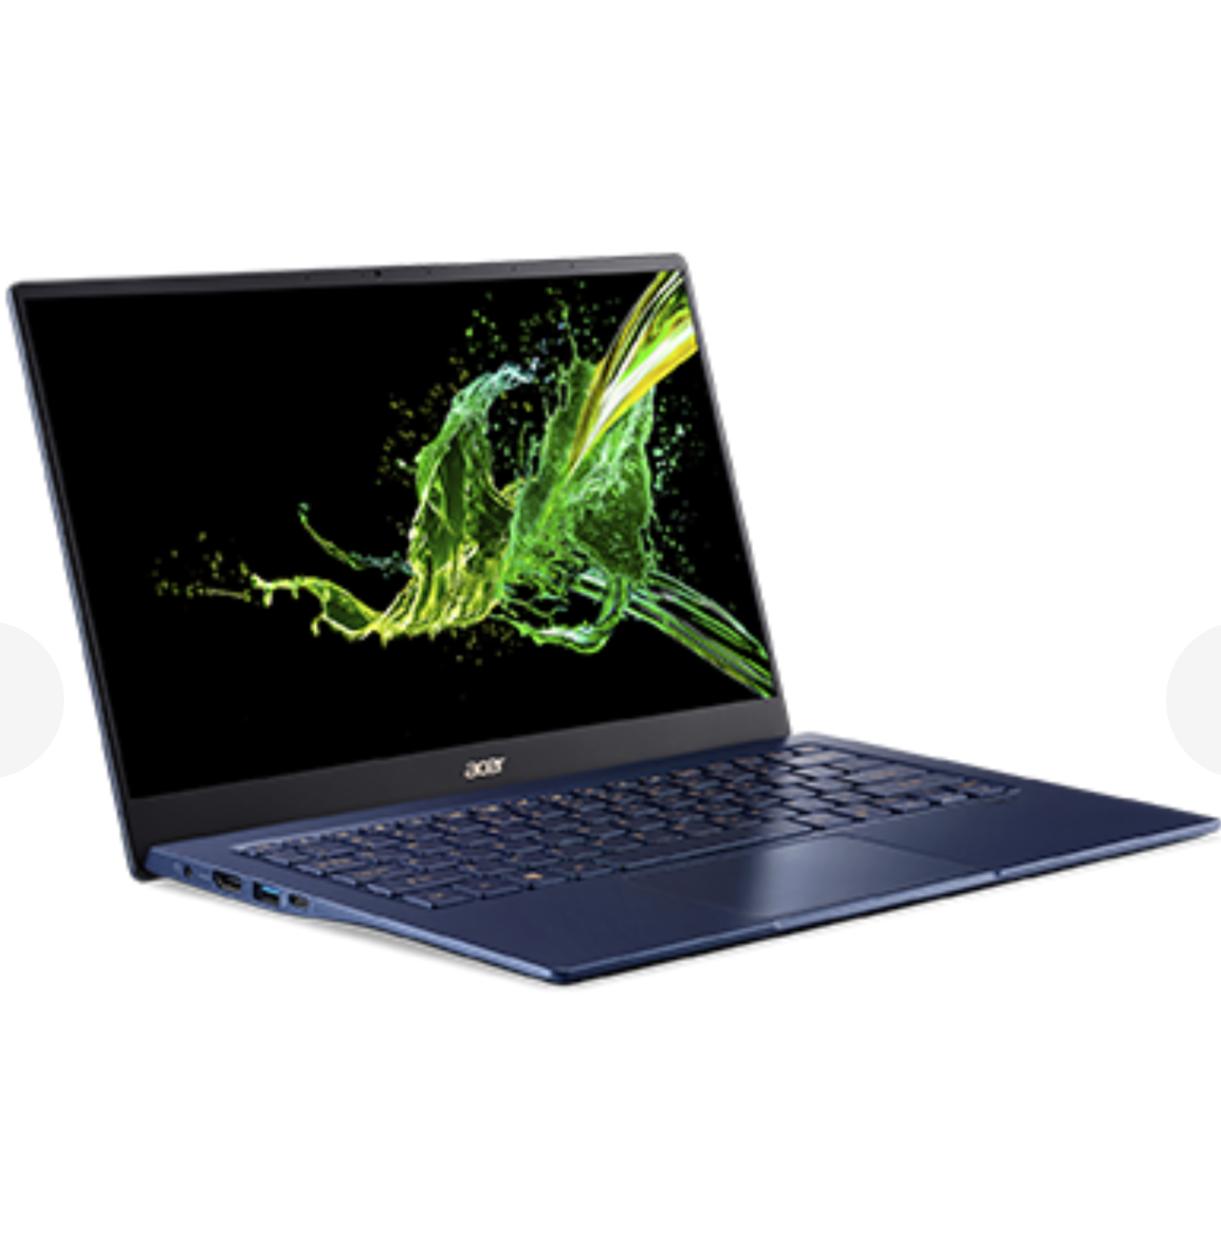 Acer: Extra 10% off Sitewide from Fatcoupon only